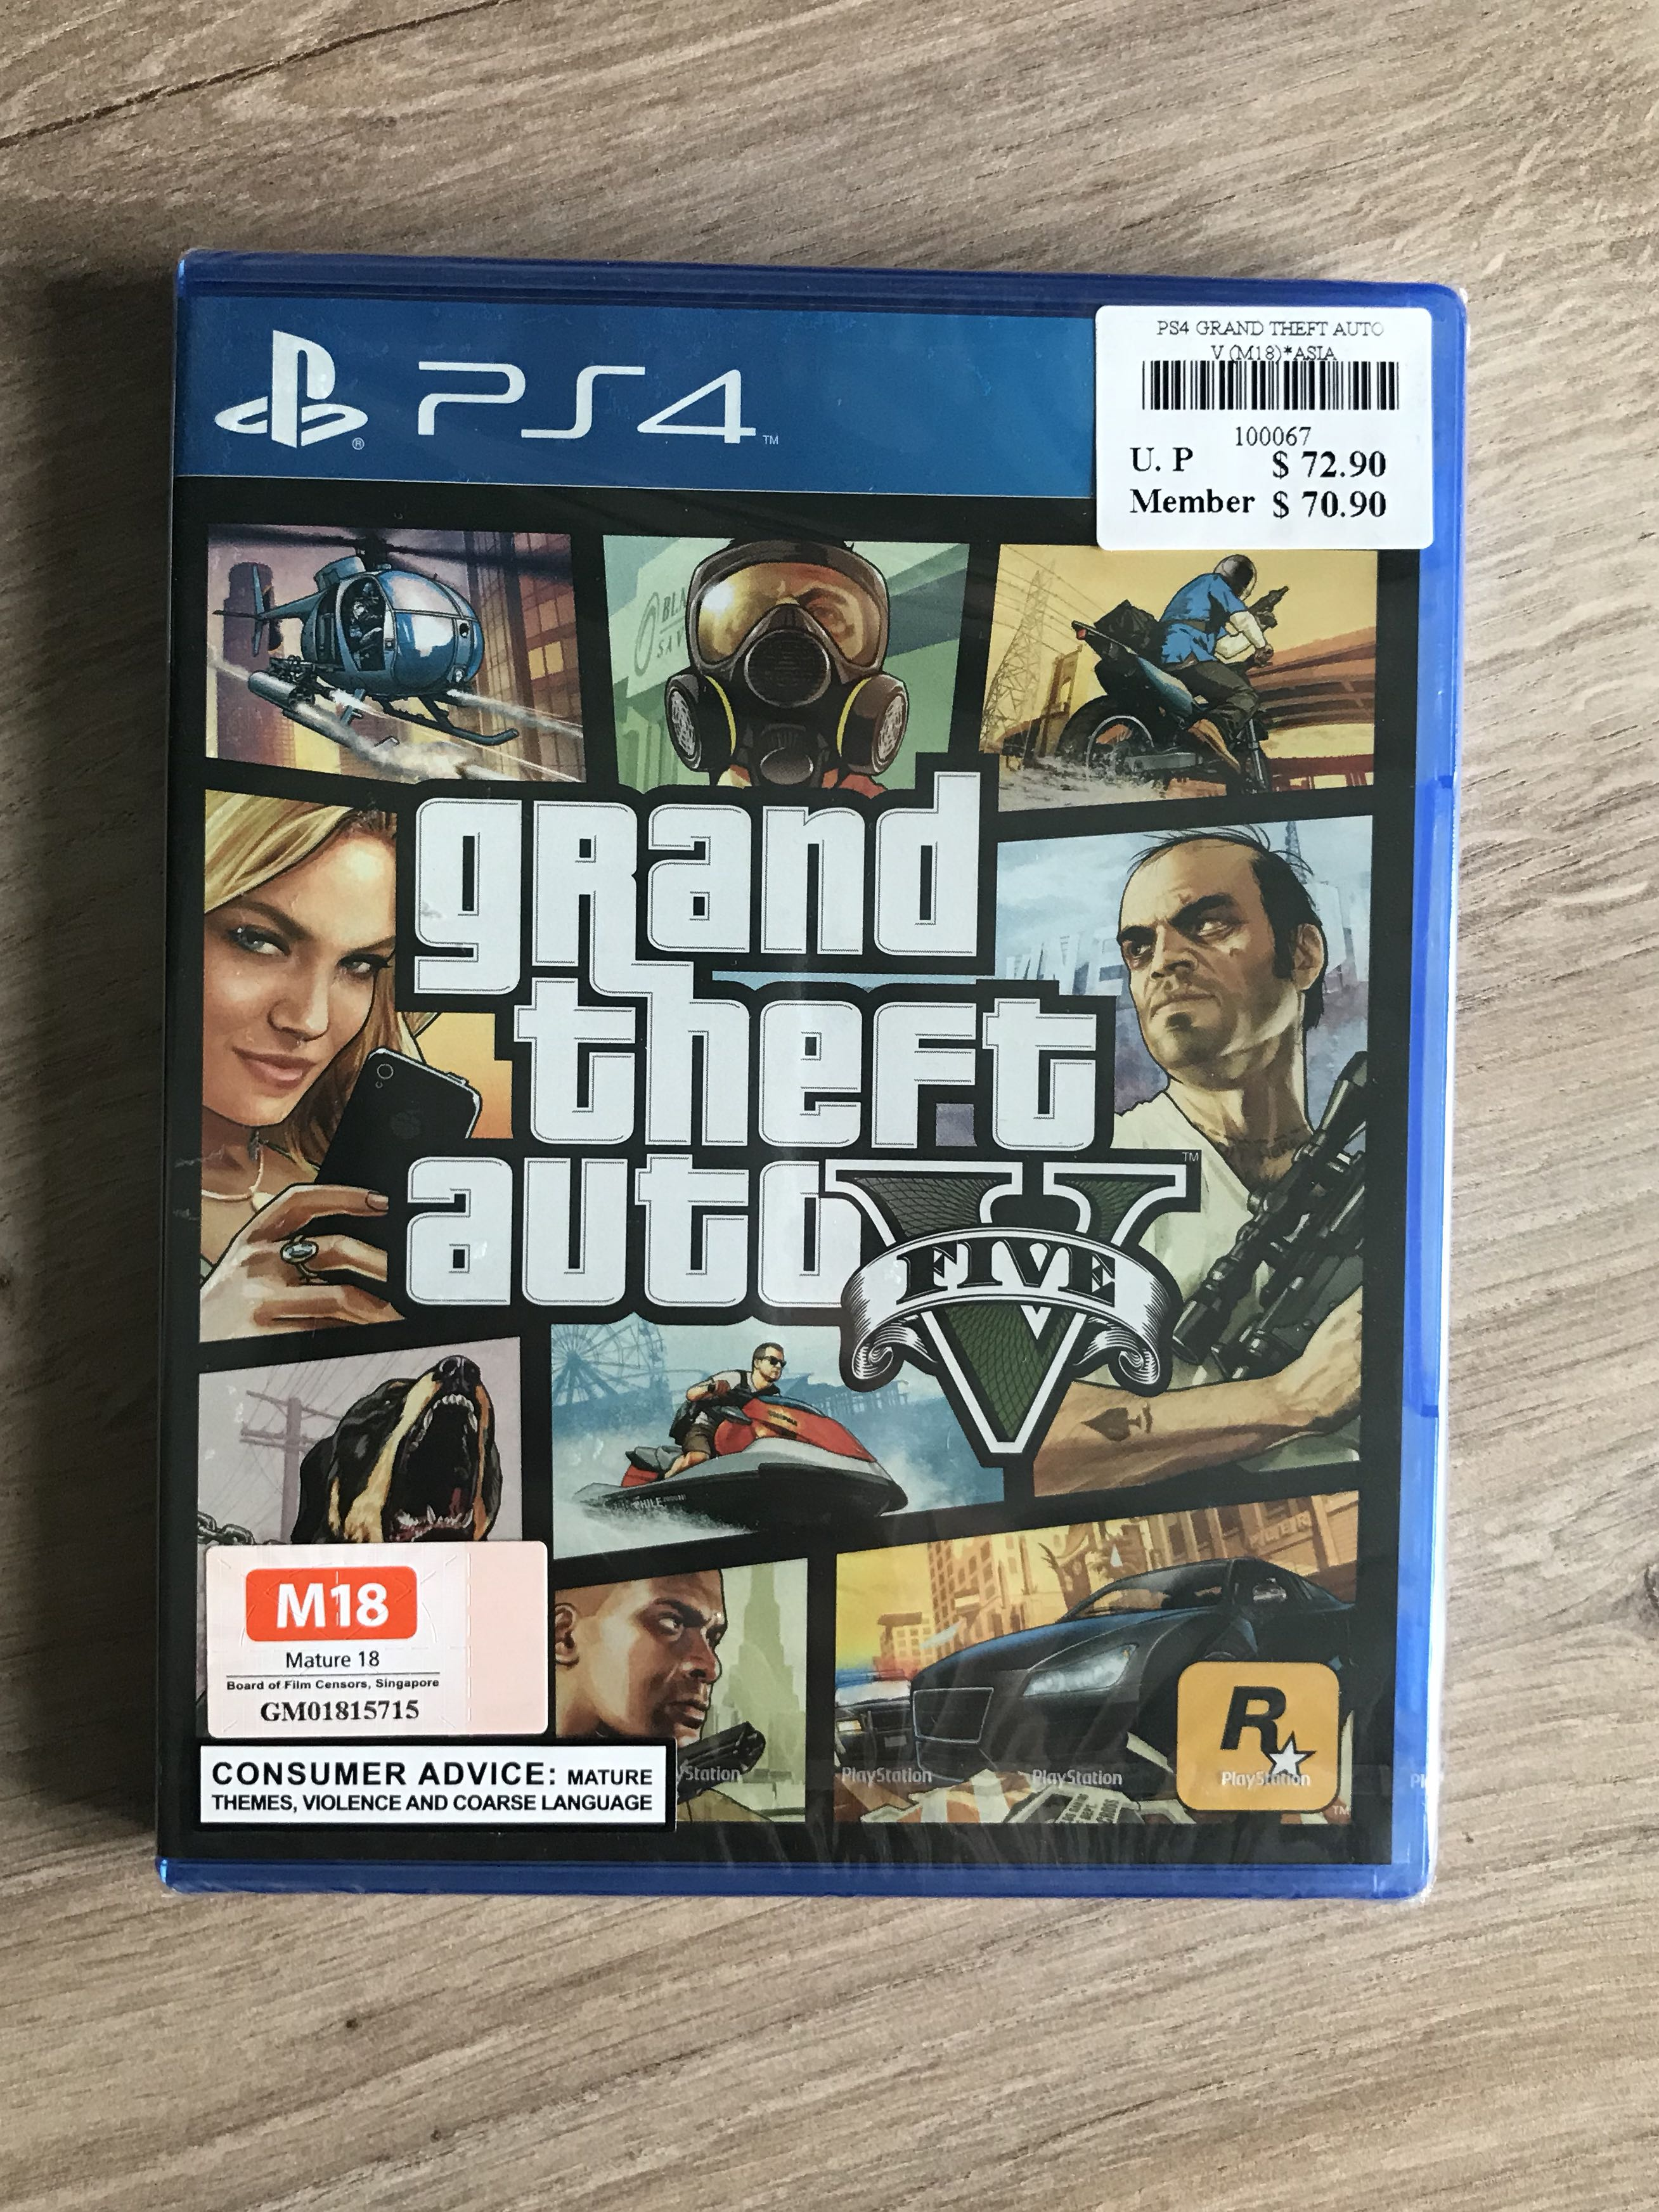 5157a863078 Grand Theft Auto 5 (PS4), Toys & Games, Video Gaming, Video Games on  Carousell